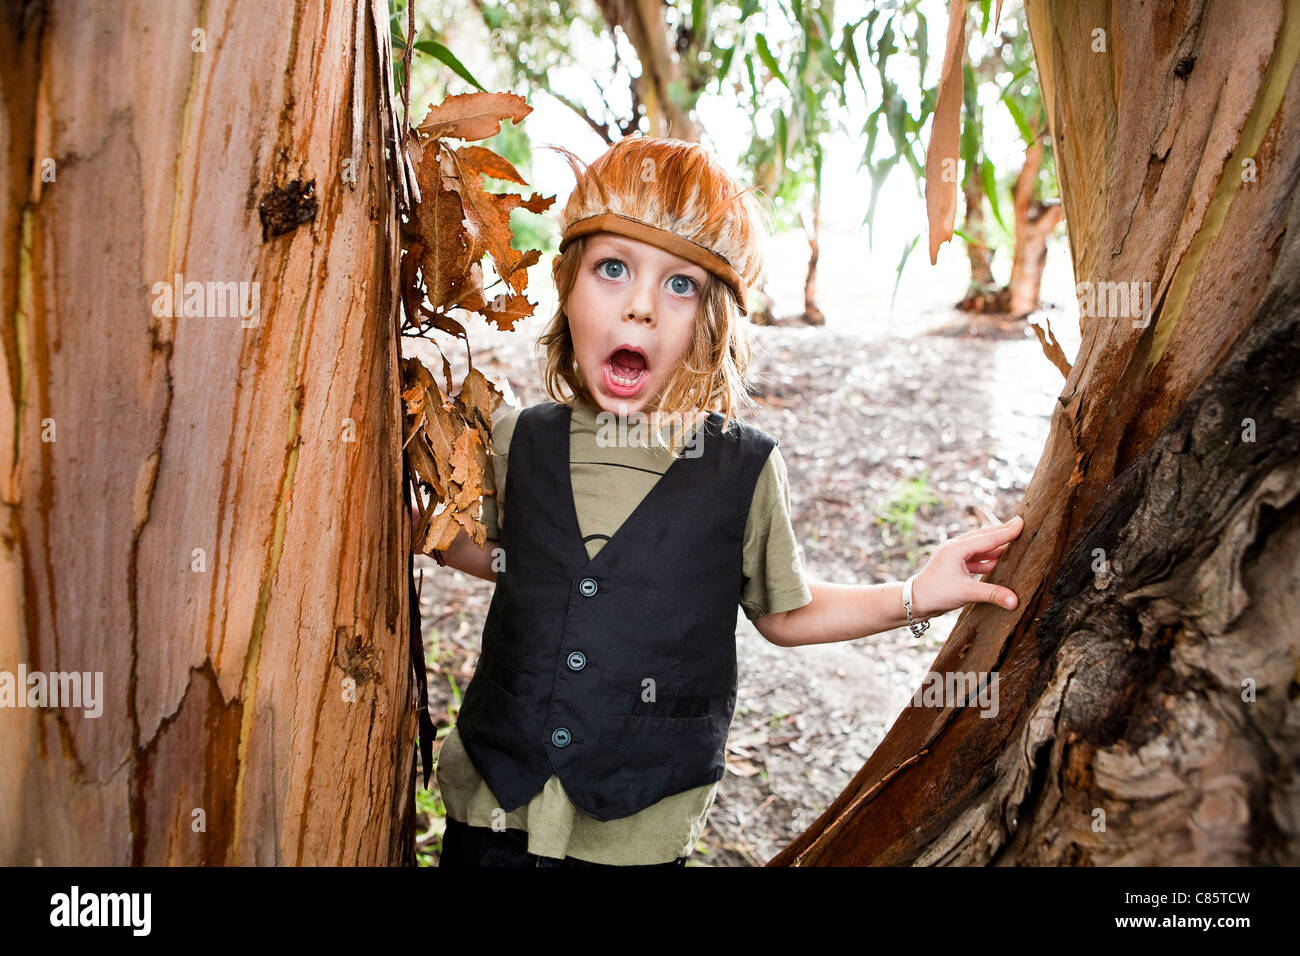 Little boy wearing a feather headdress making silly faces - Stock Image